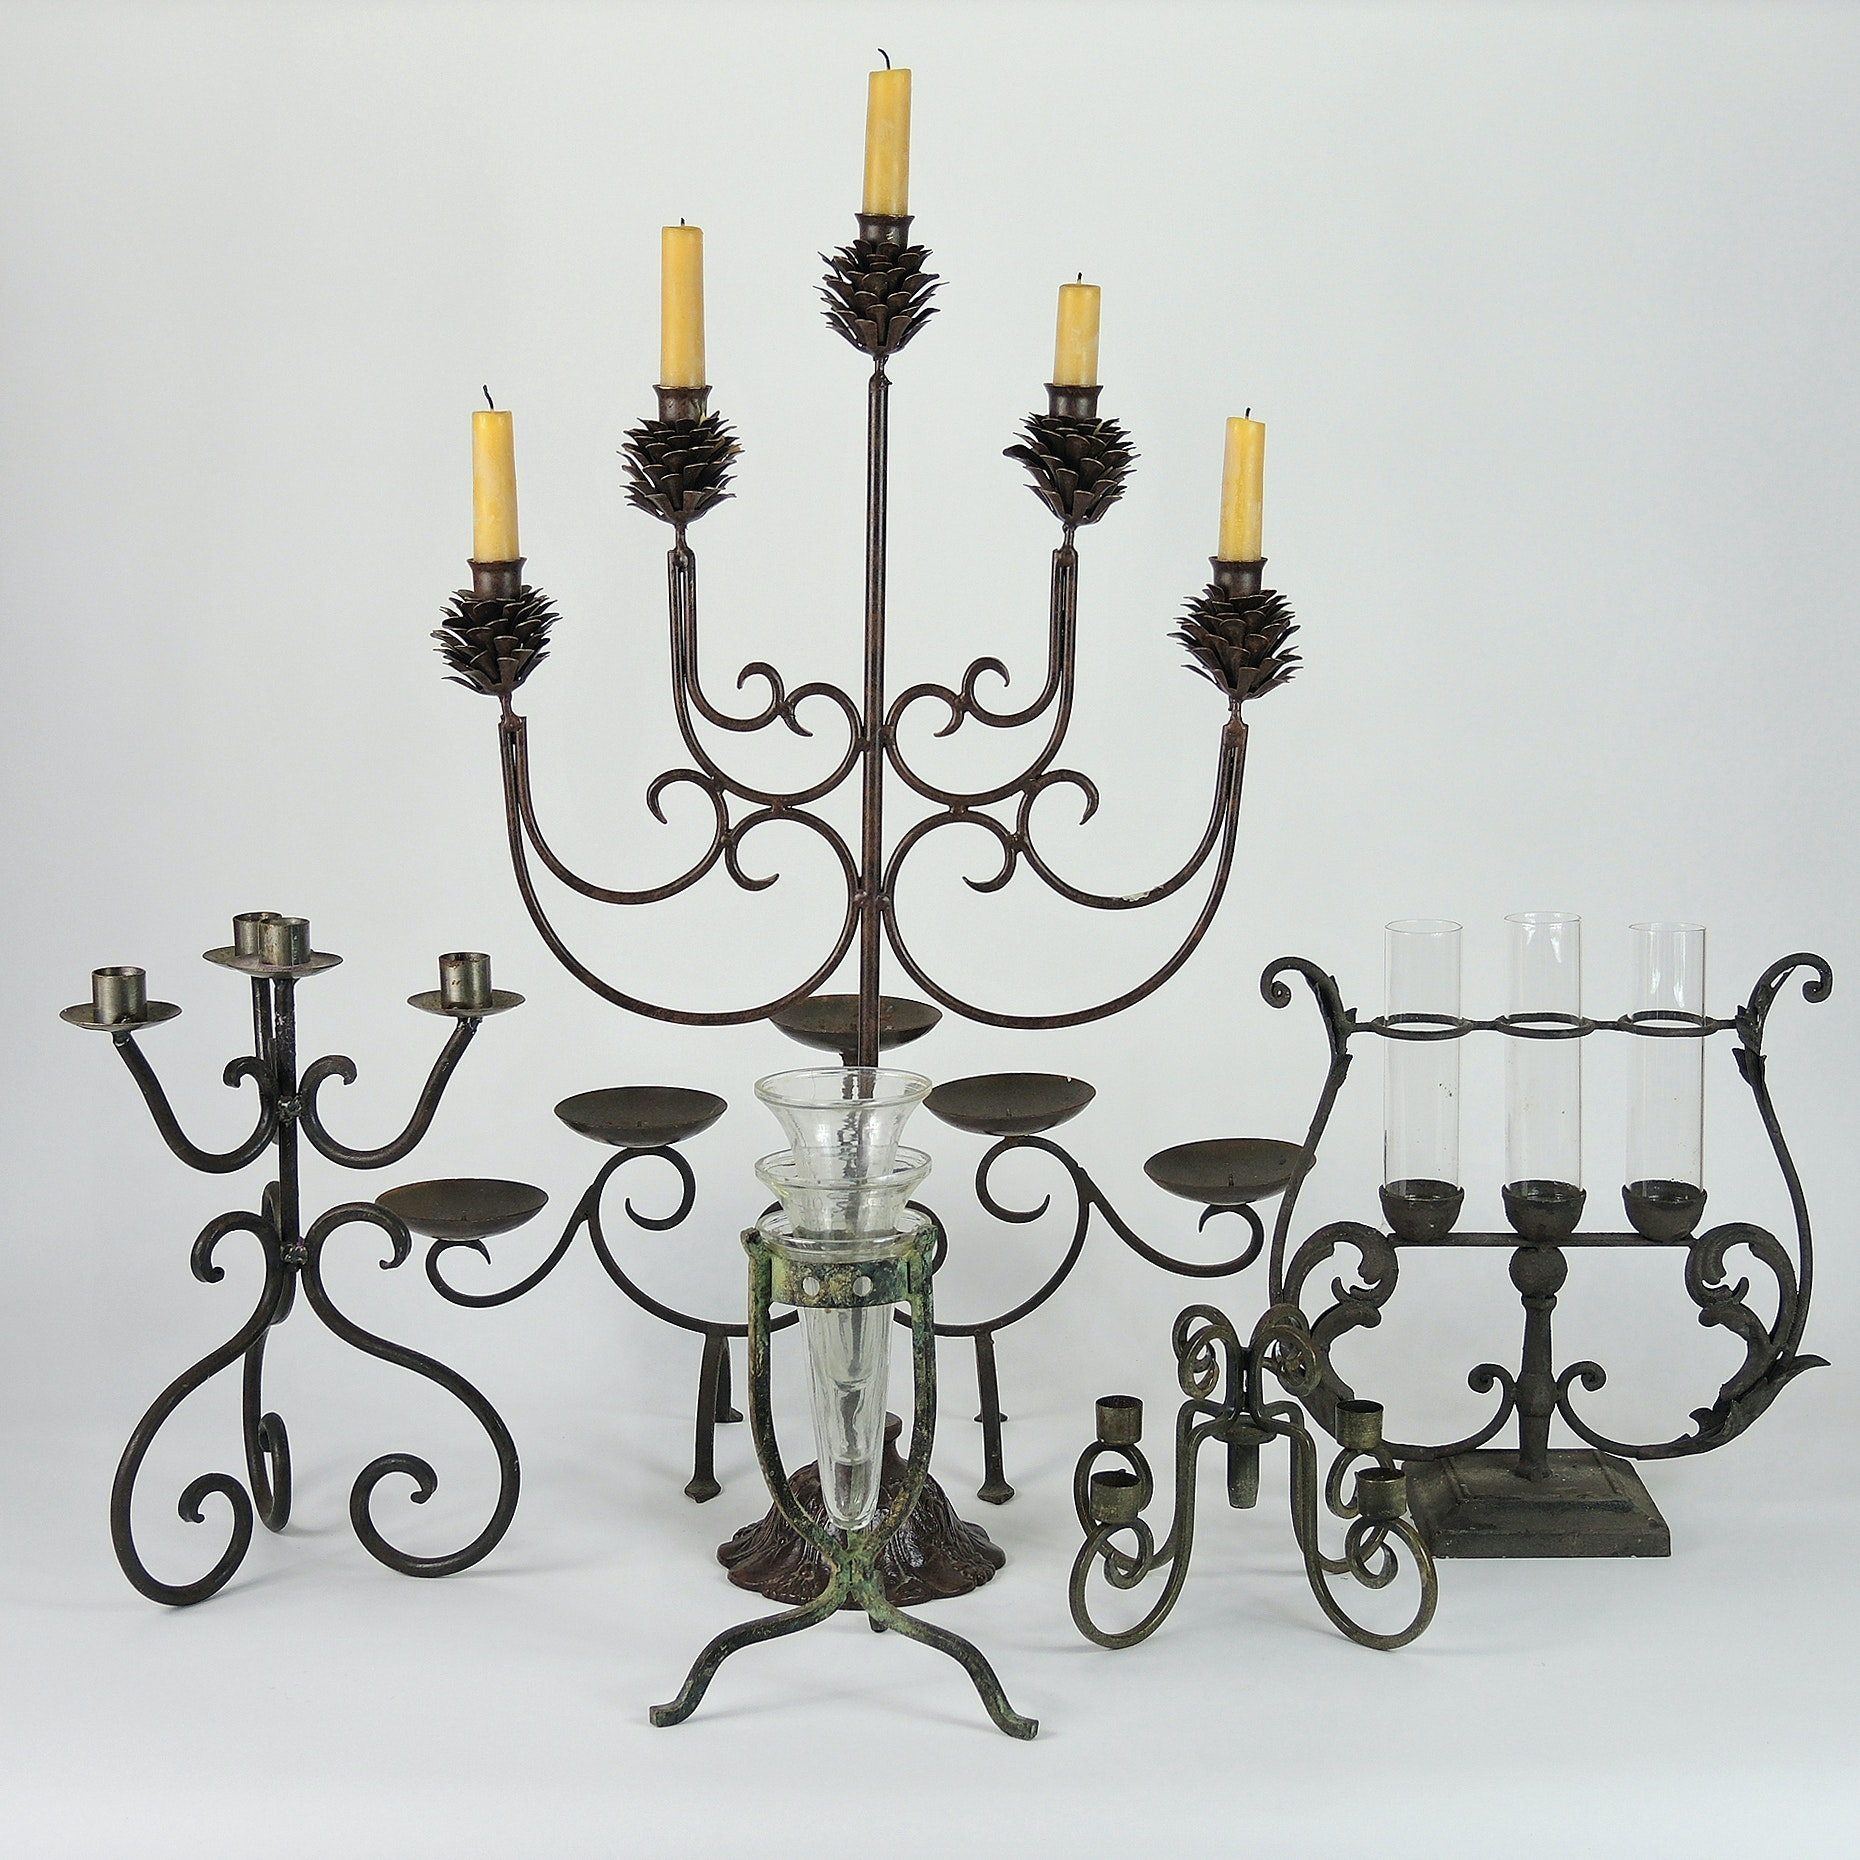 Wrought Iron Candle Holders and Table Decor